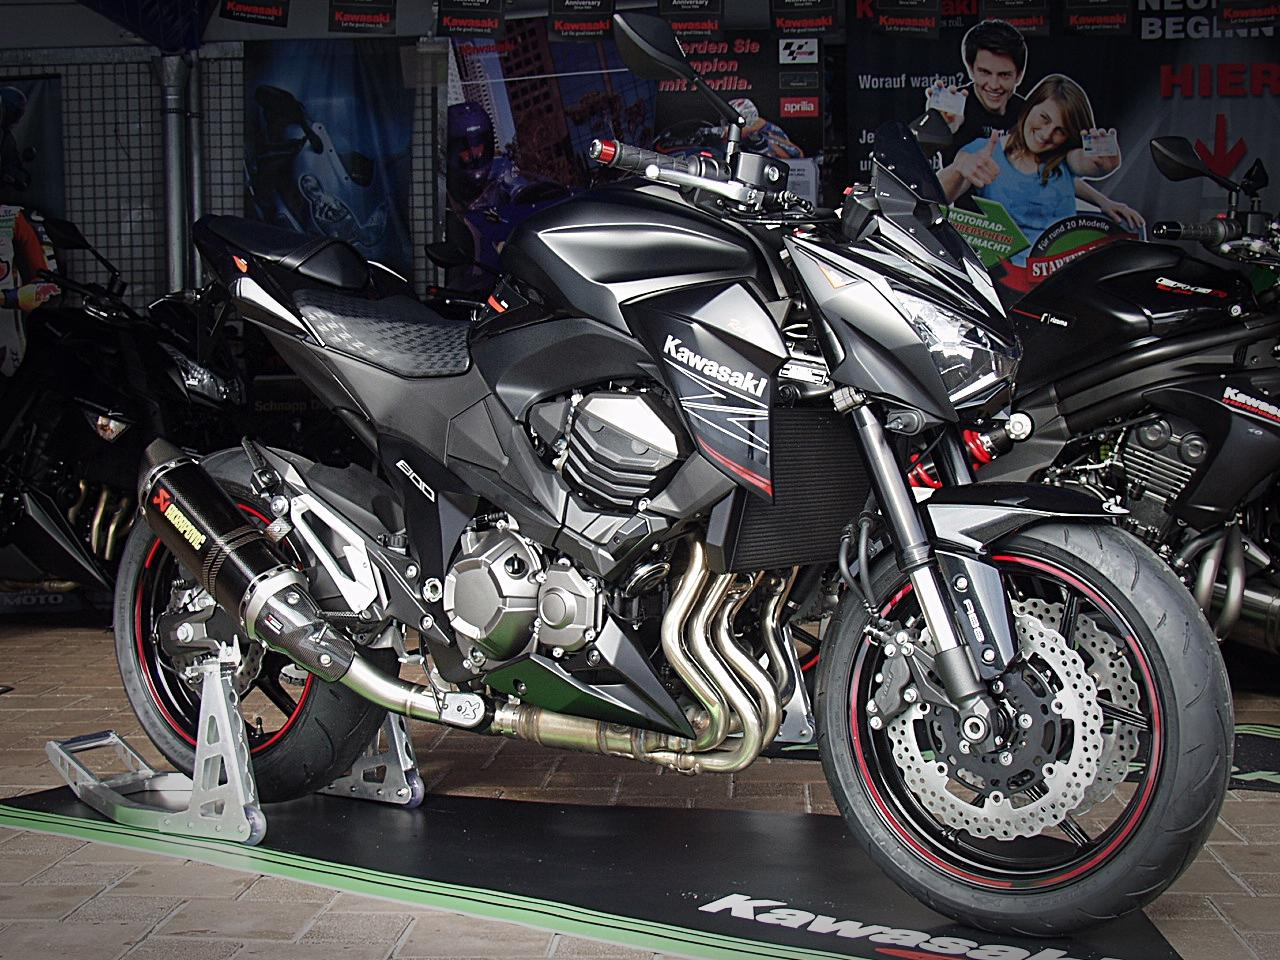 Z800 Abs 2013 Rsi Exclusive Rizoma Edition Red Label